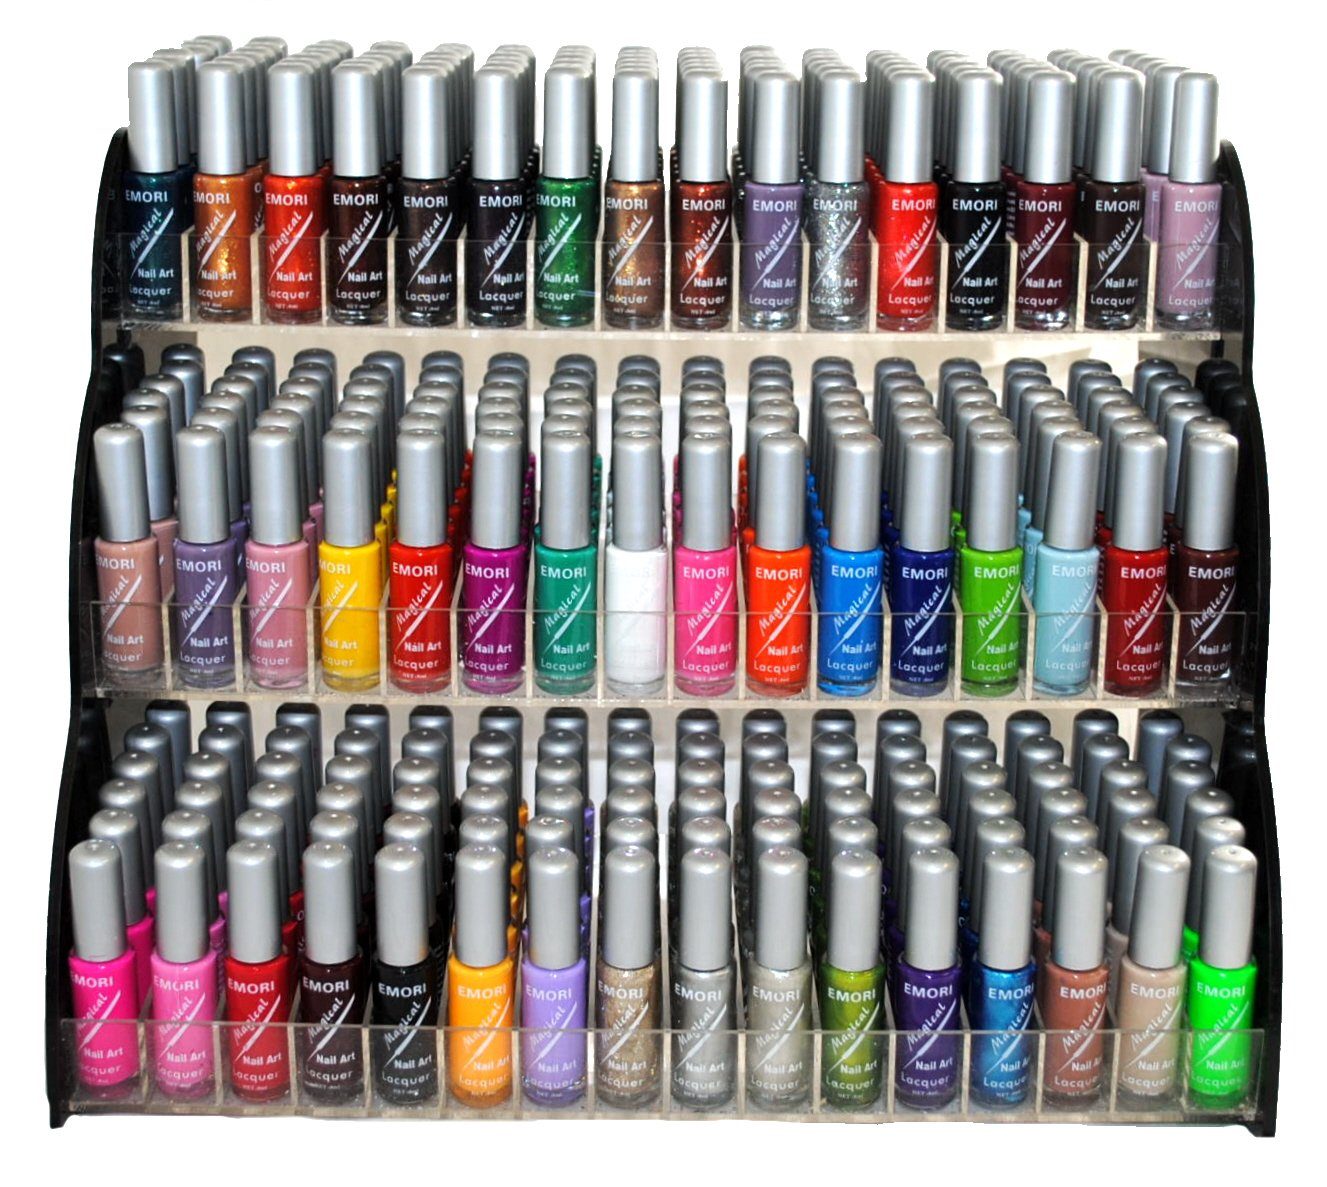 Nail art kit in amazon – Great photo blog about manicure 2017